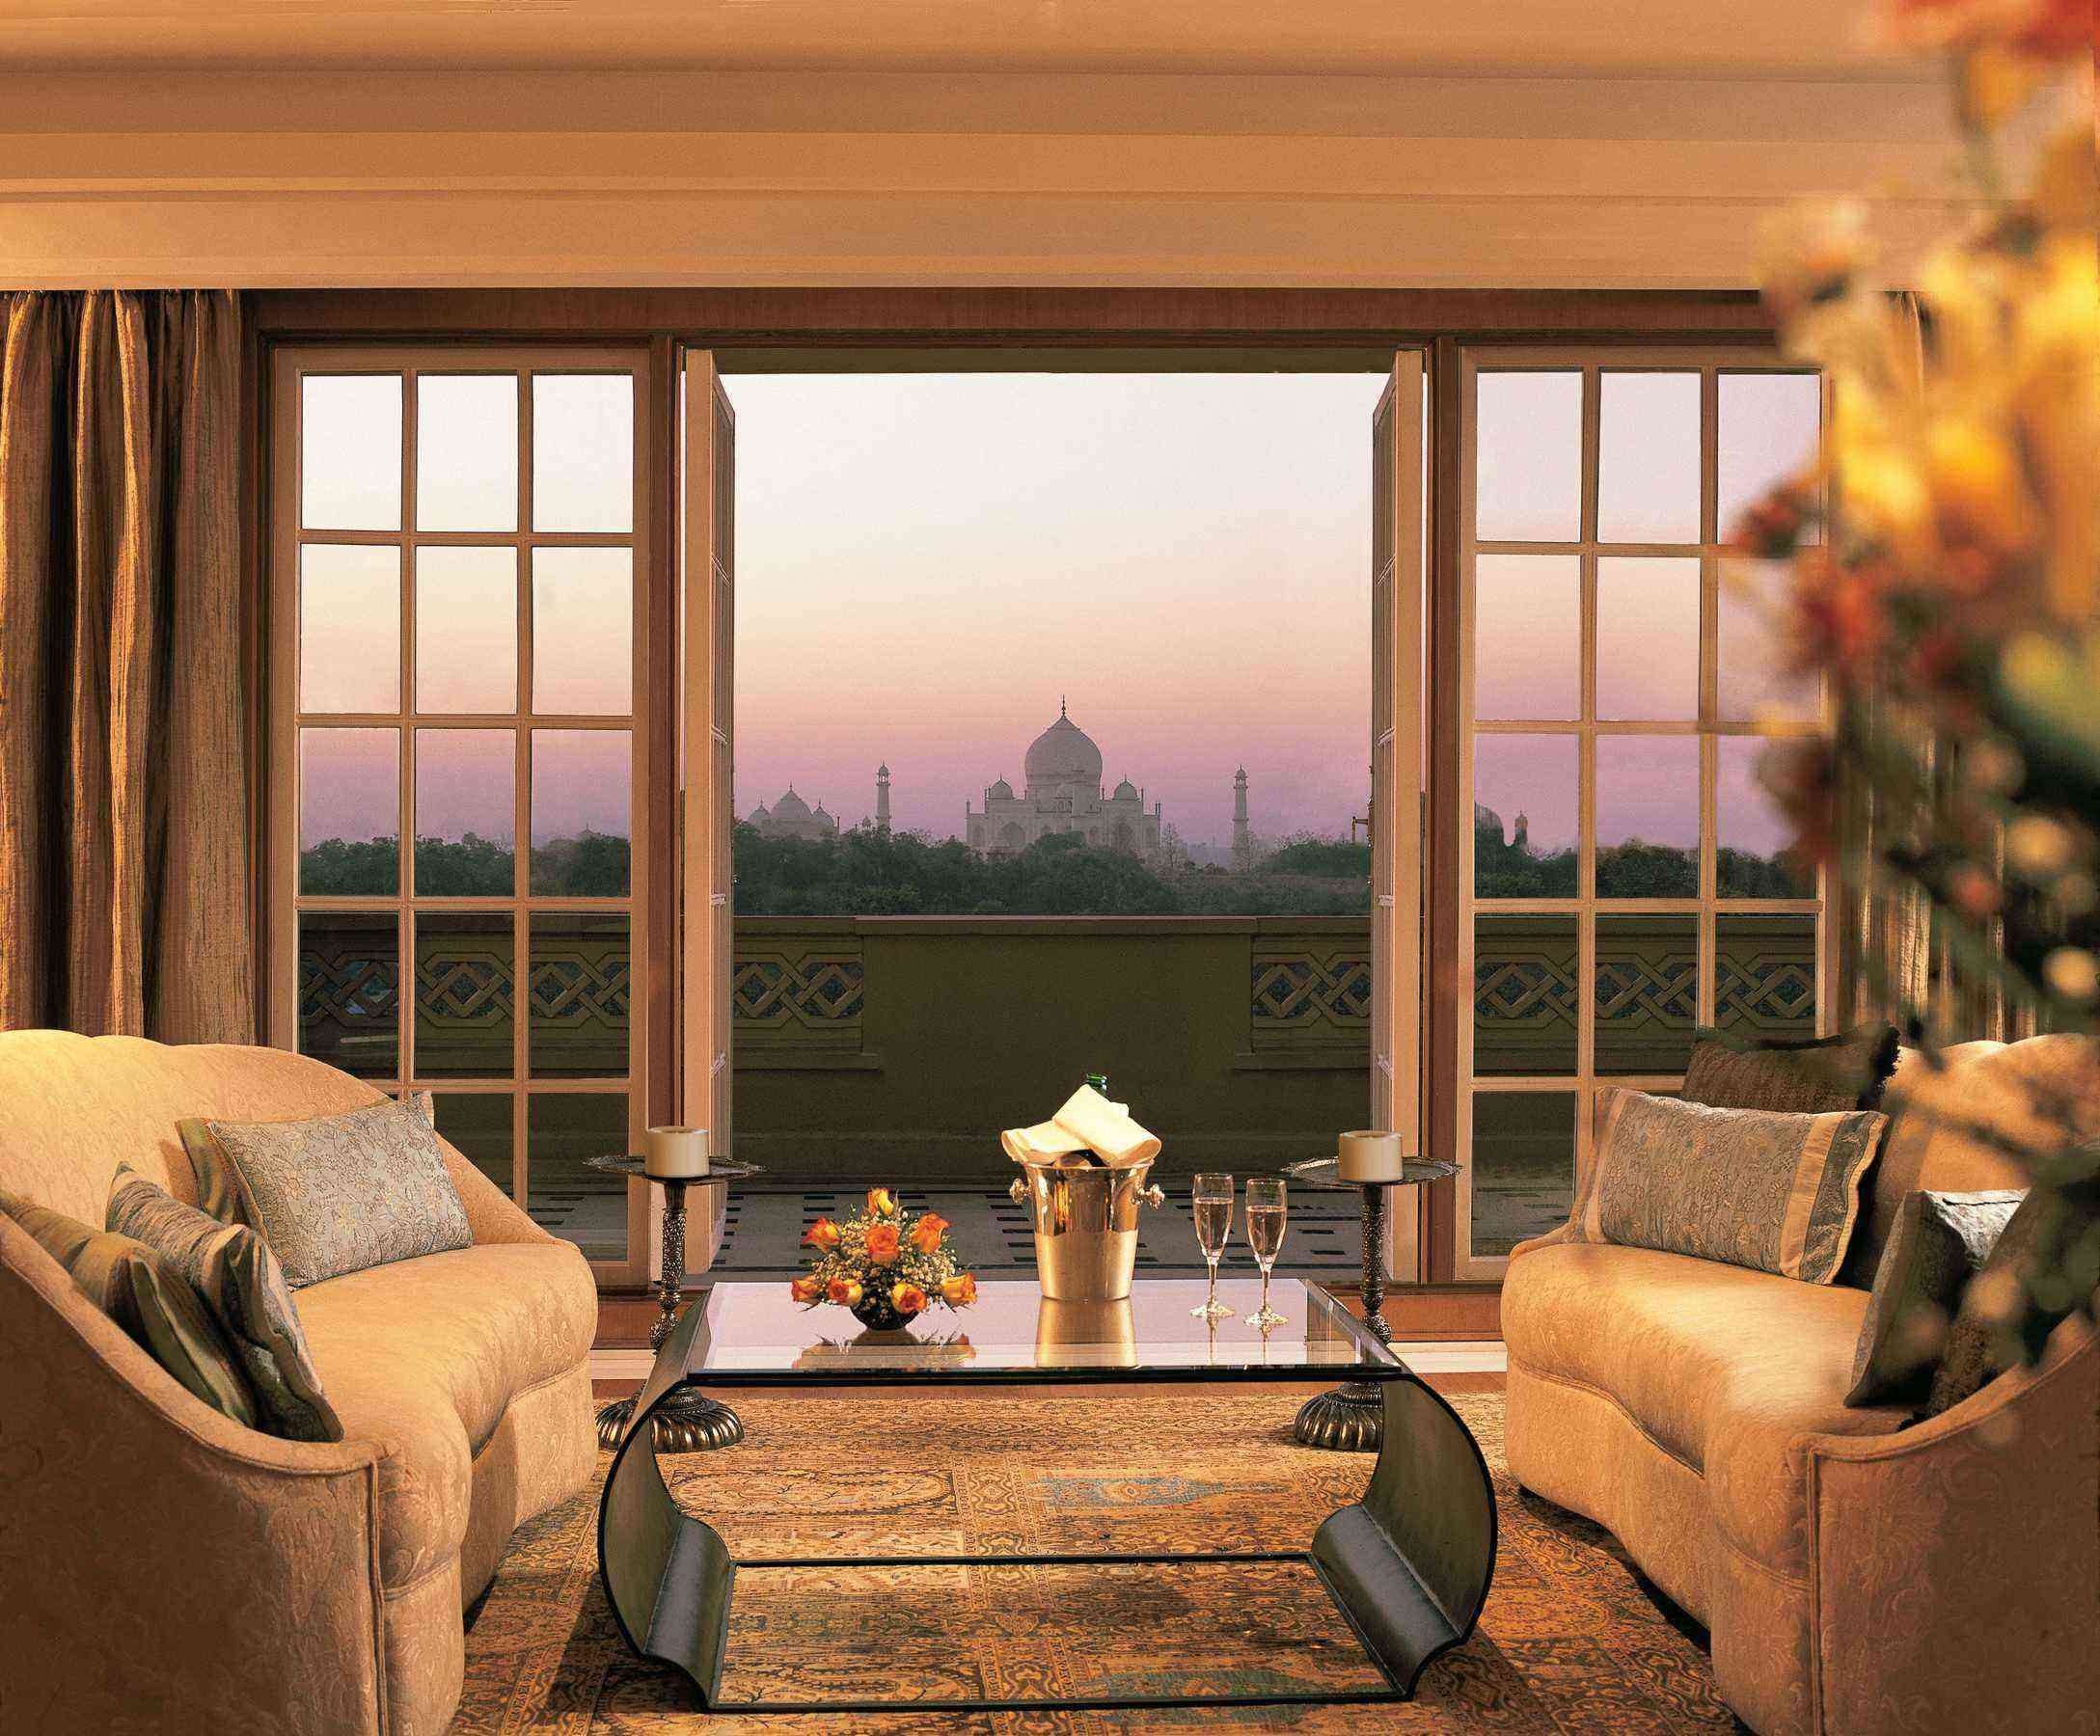 This Hotel Has A Perfect View Of The Taj Mahal Fodors